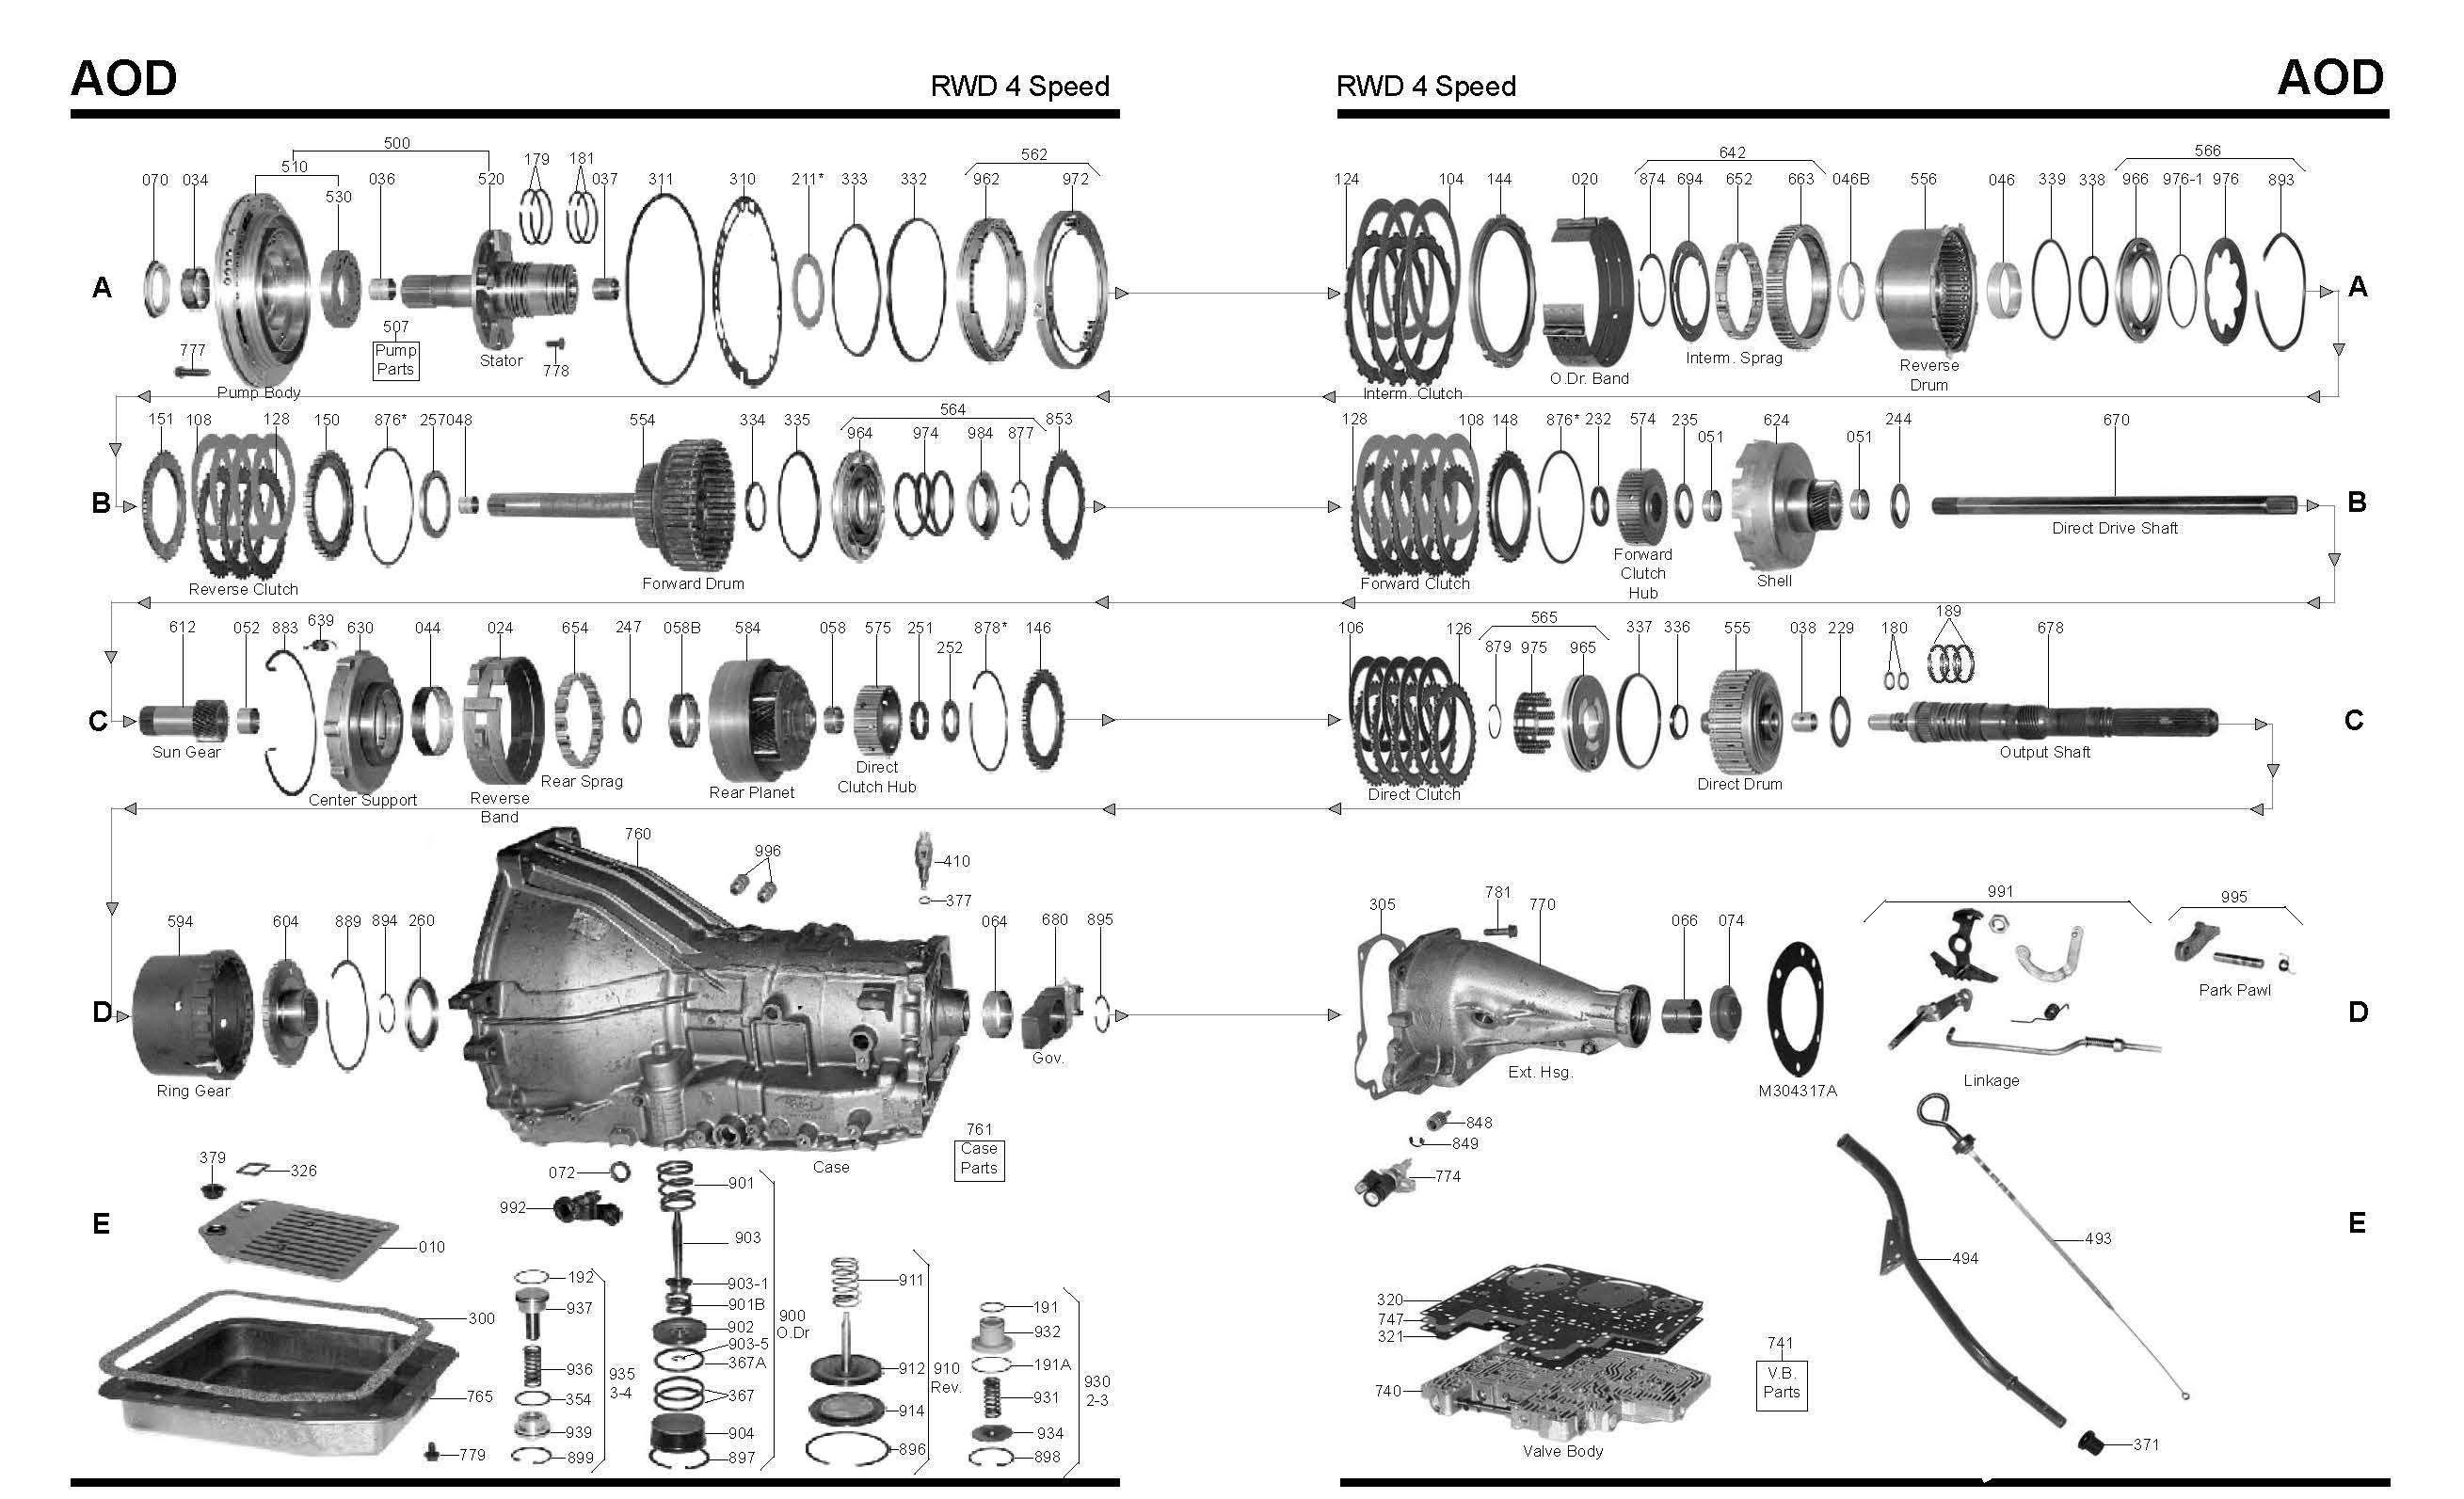 Allison 1000 Parts Diagram I Need the Transmission